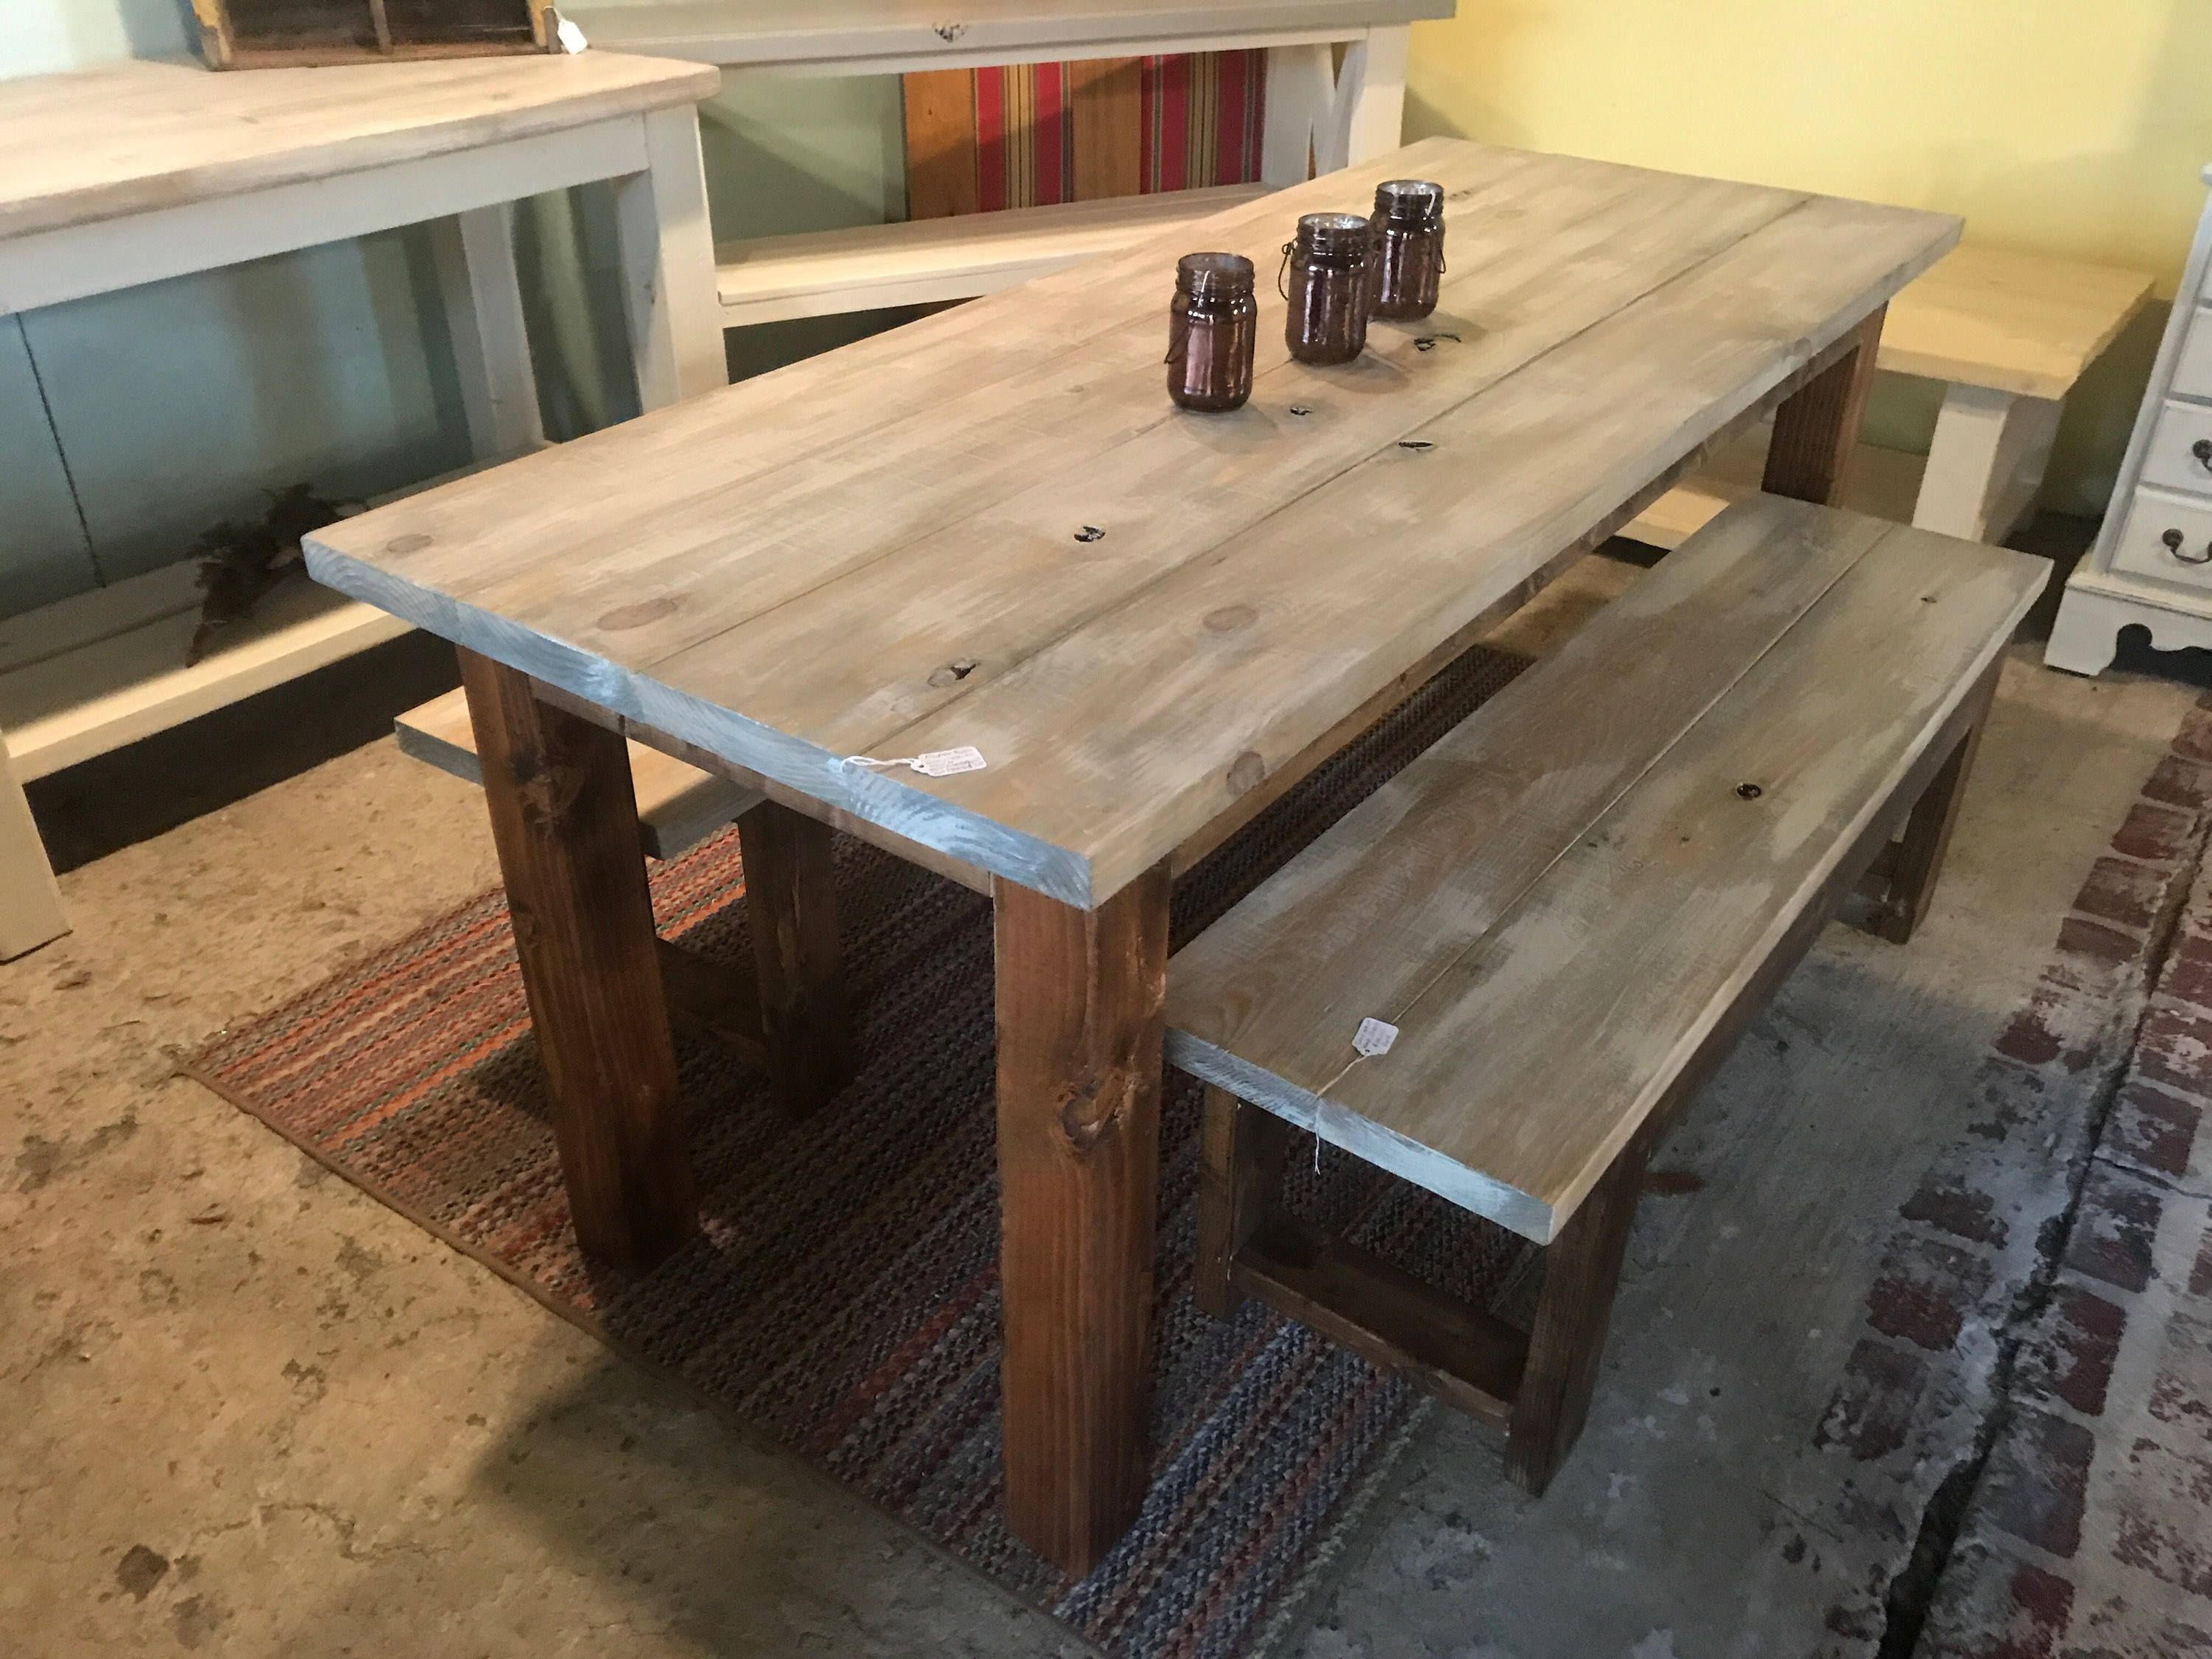 Rustic Farmhouse Table Set With Gray White Wash Includes Matching Benches Provincial Brown Base Dining Decor By Capefearcurbside On Etsy